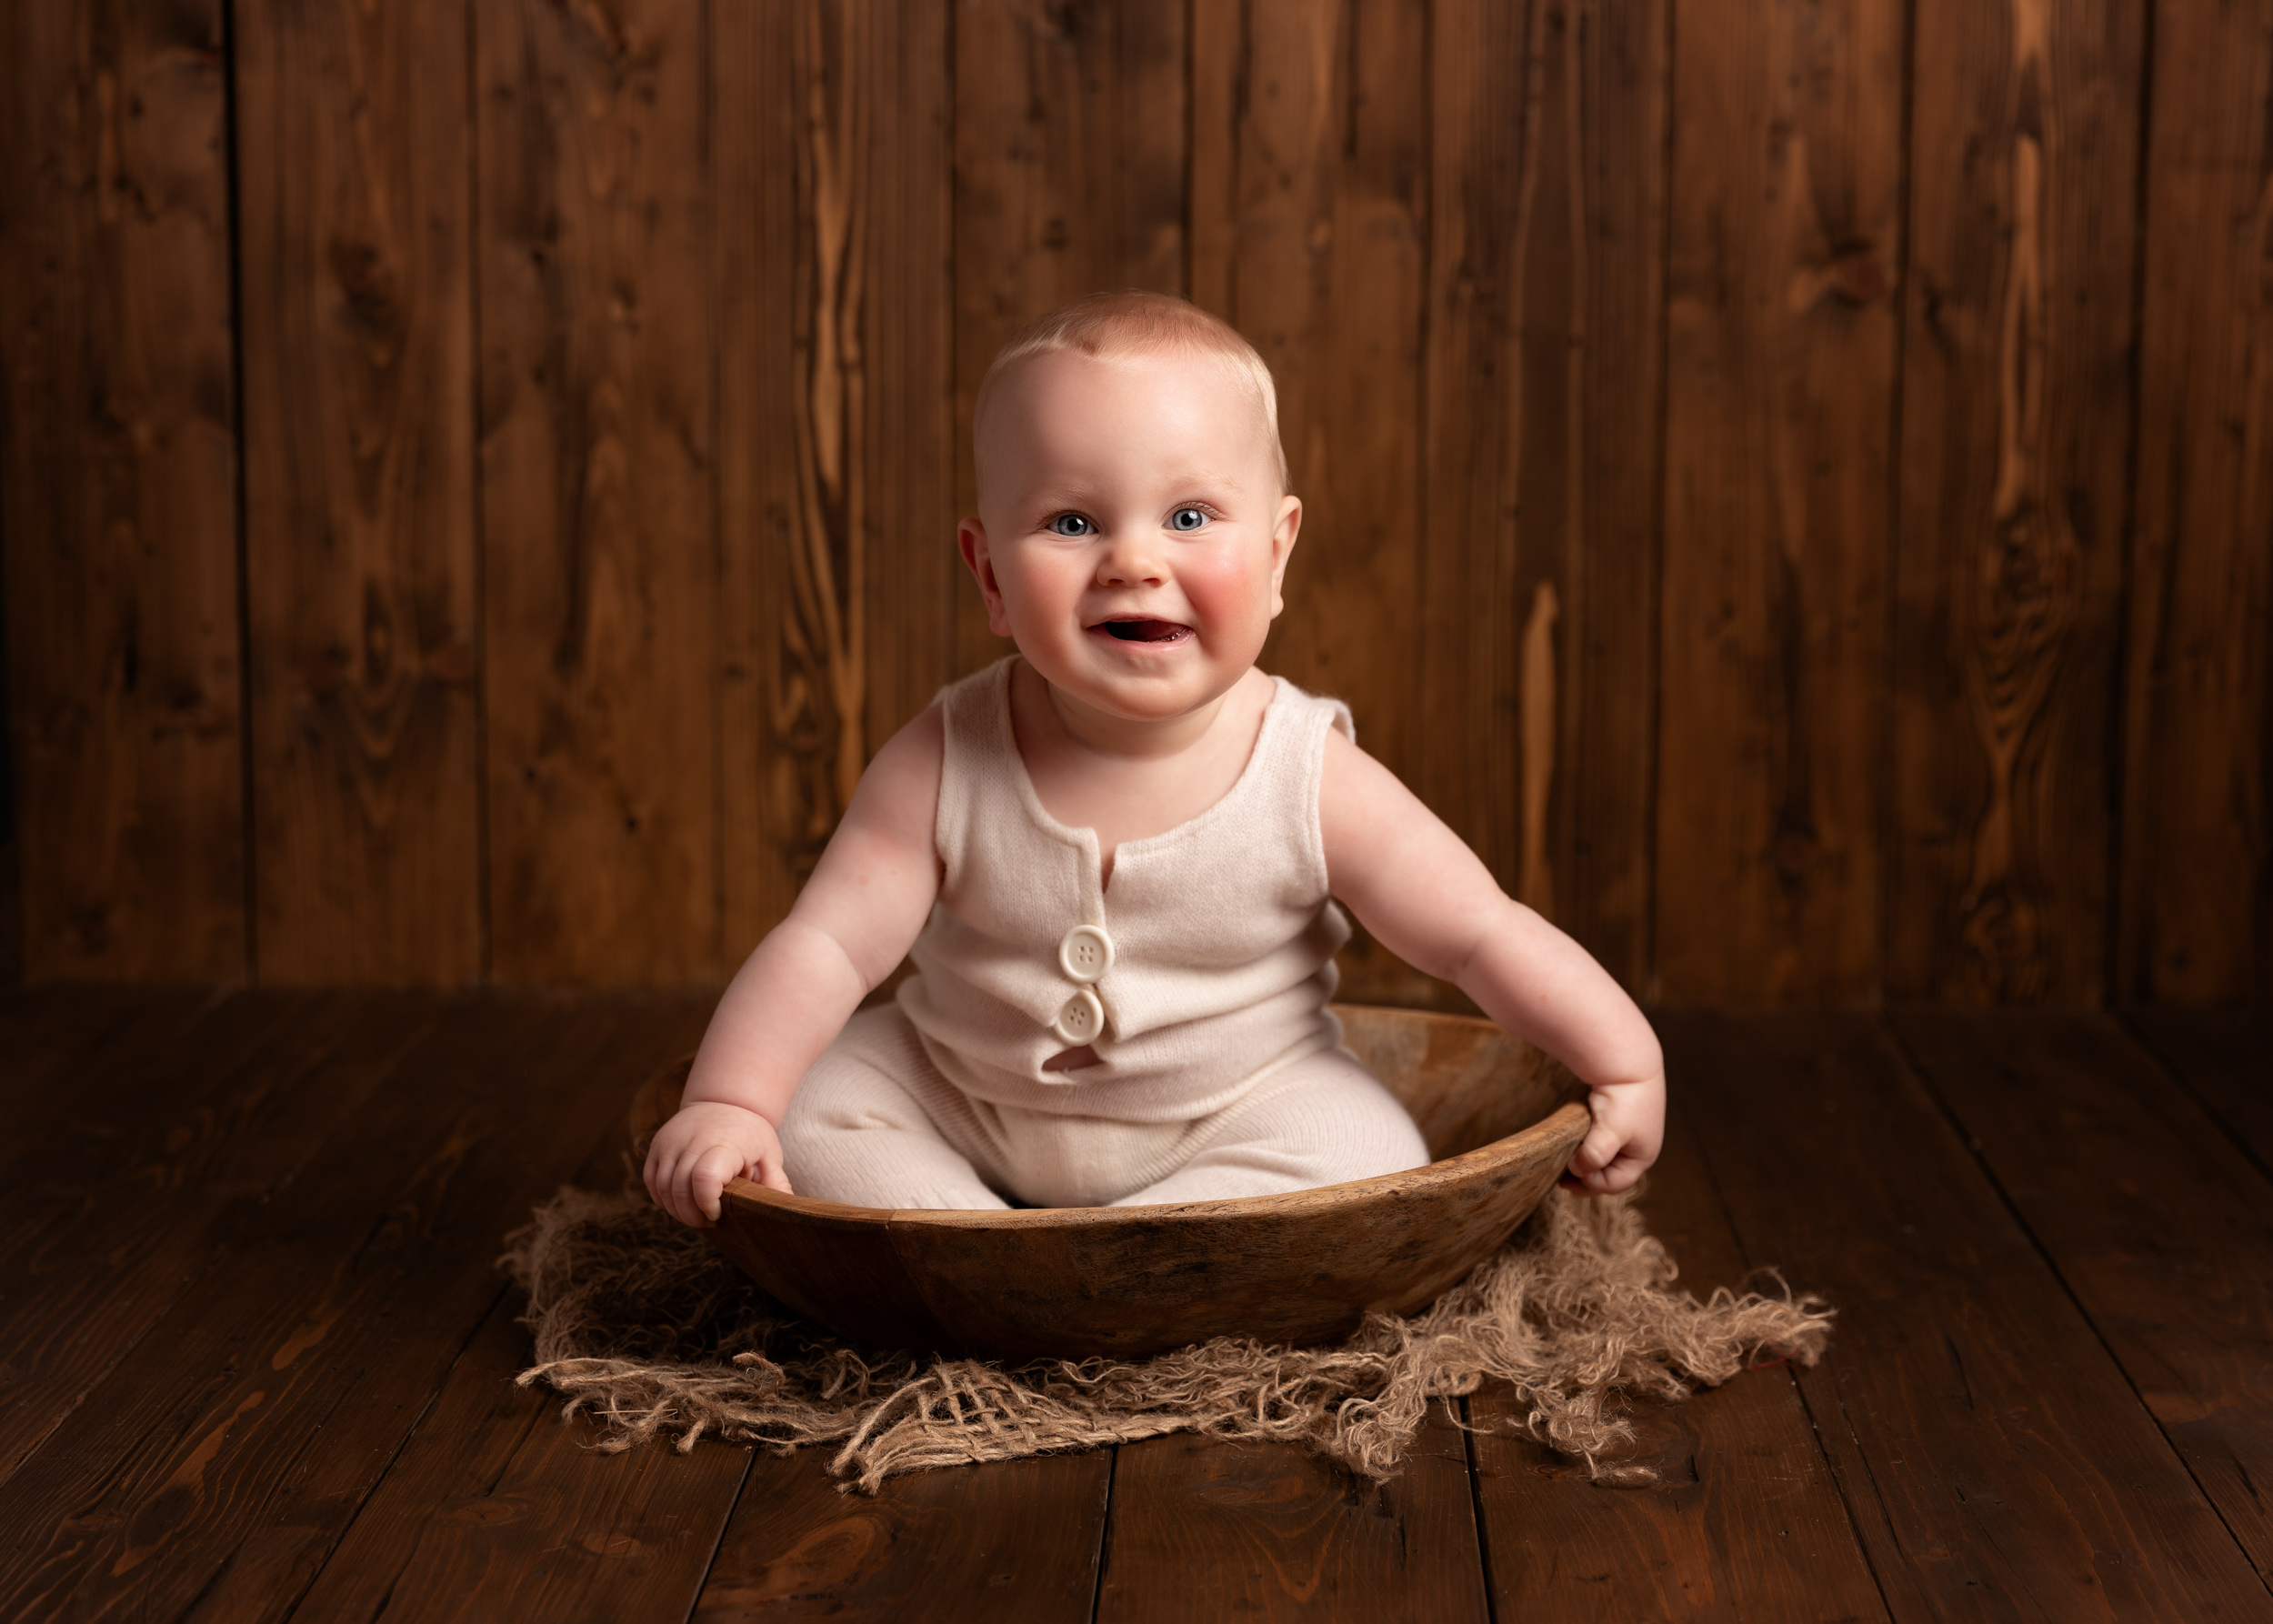 6 Month old baby sitting in a bowl with rustic wood surround in Sandbach, Cheshire